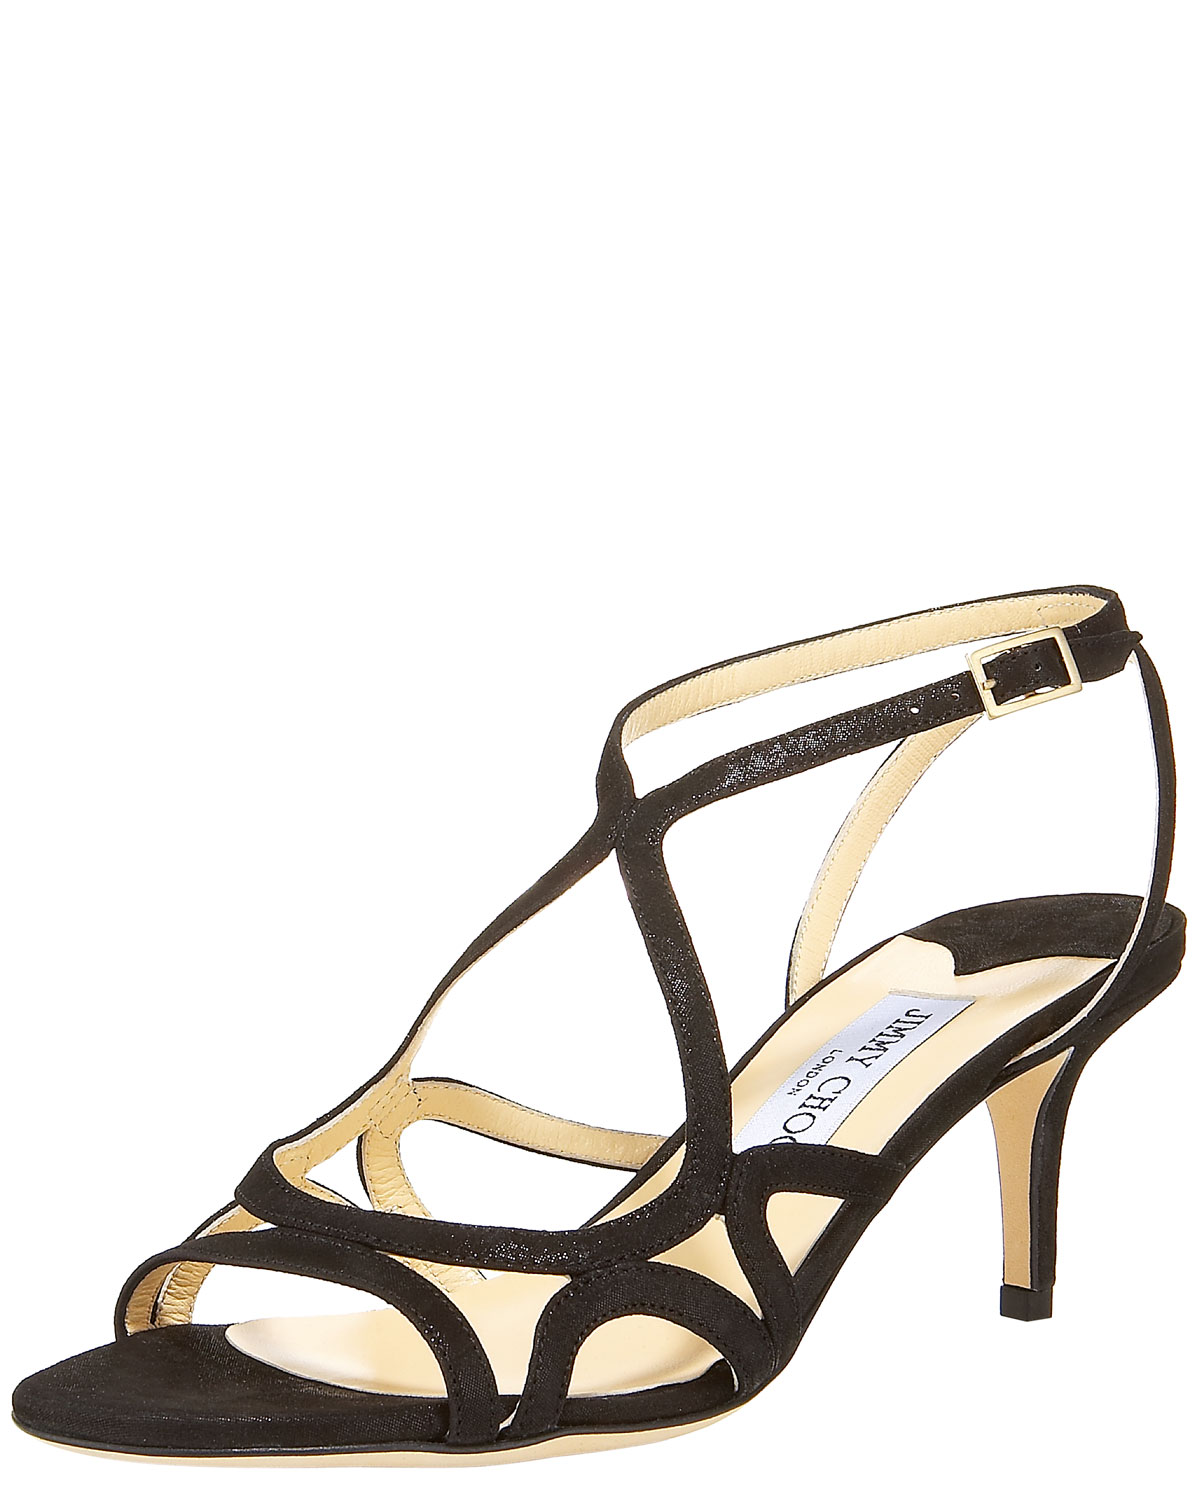 Low Heel Sandals Black Best 25 Mid Heel Sandals Ideas On Pinterest ...